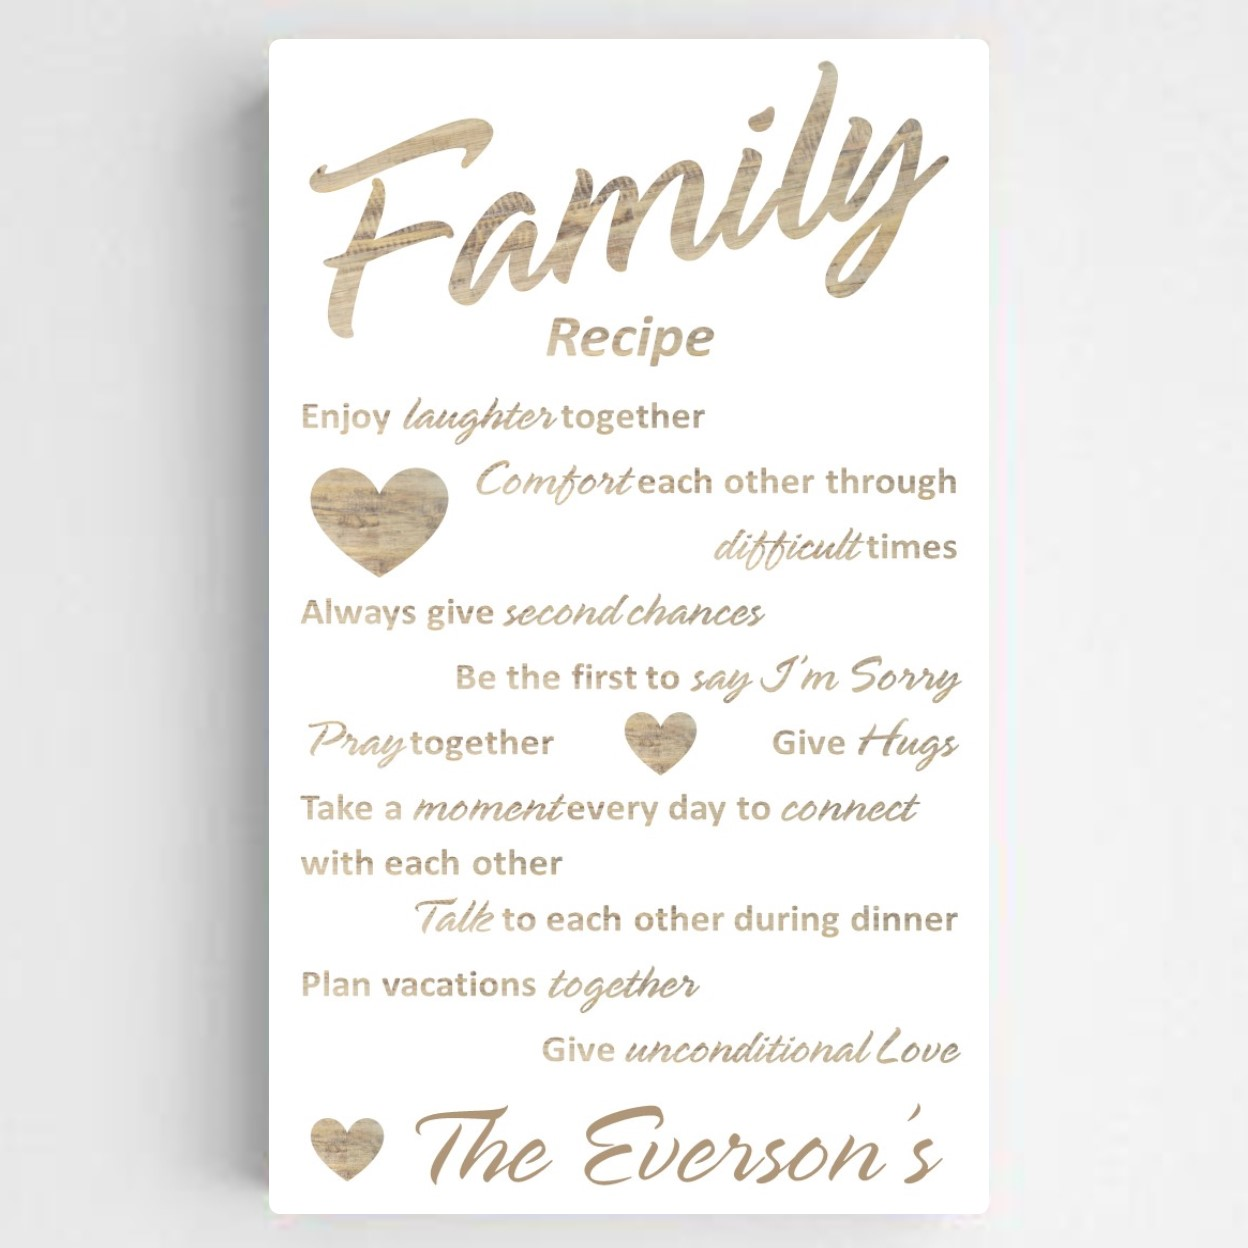 Golden Wedding Anniversary Gift Ideas For Parents: Best 50th Wedding Anniversary Gift Ideas For Your Parents